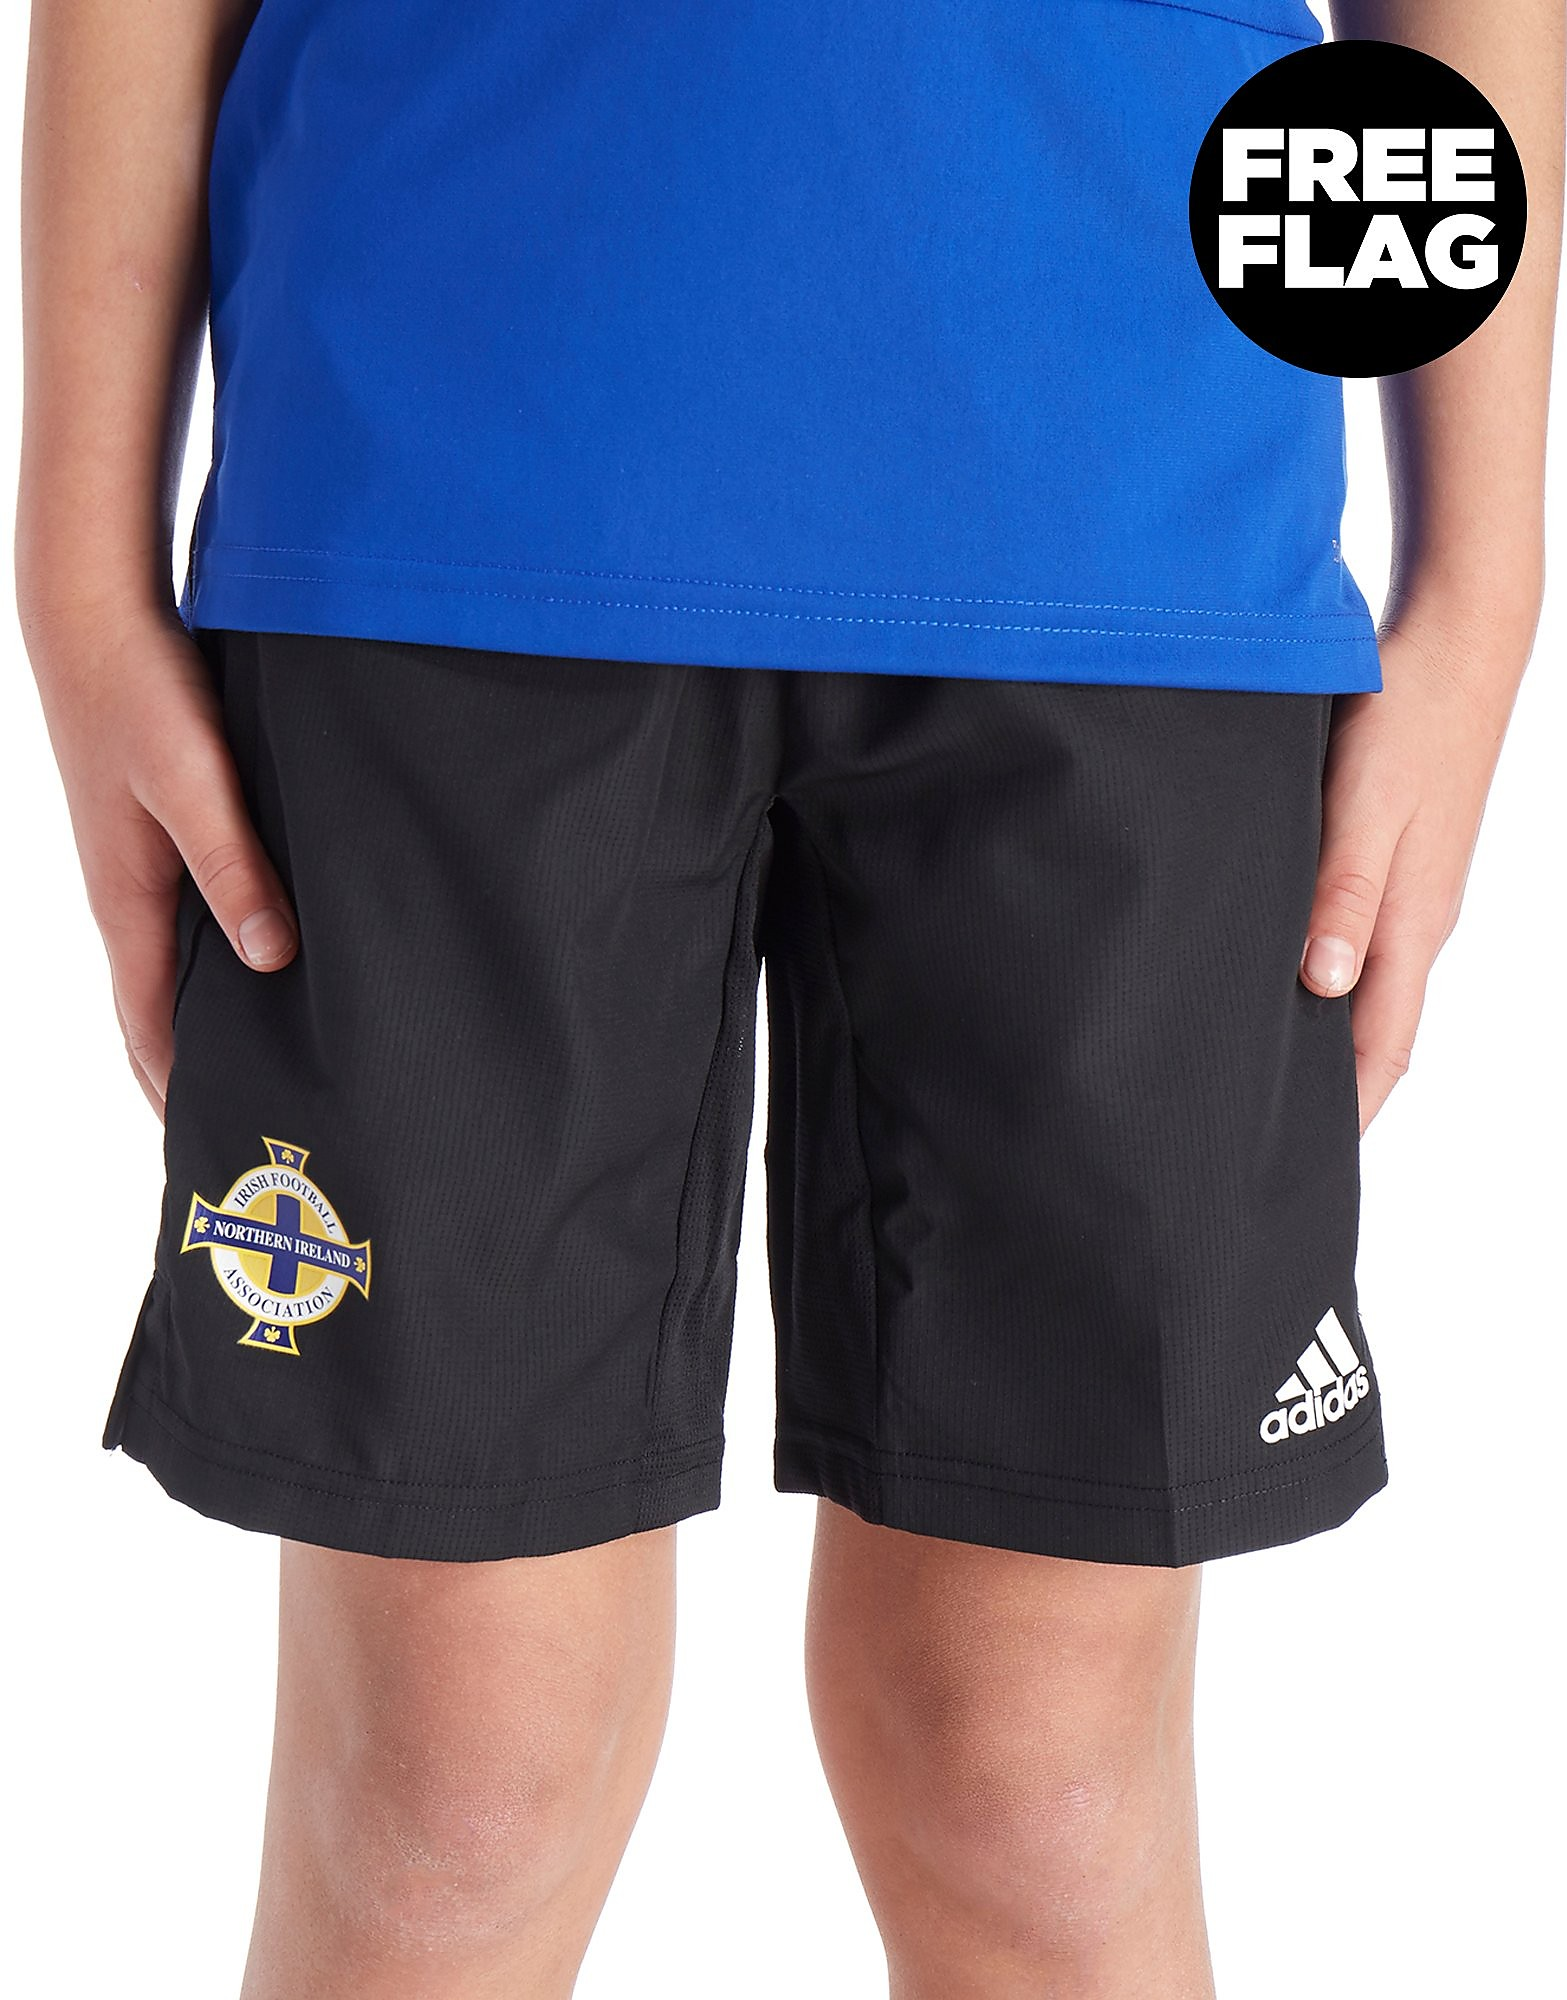 adidas Northern Ireland 2018 Woven Shorts Junior